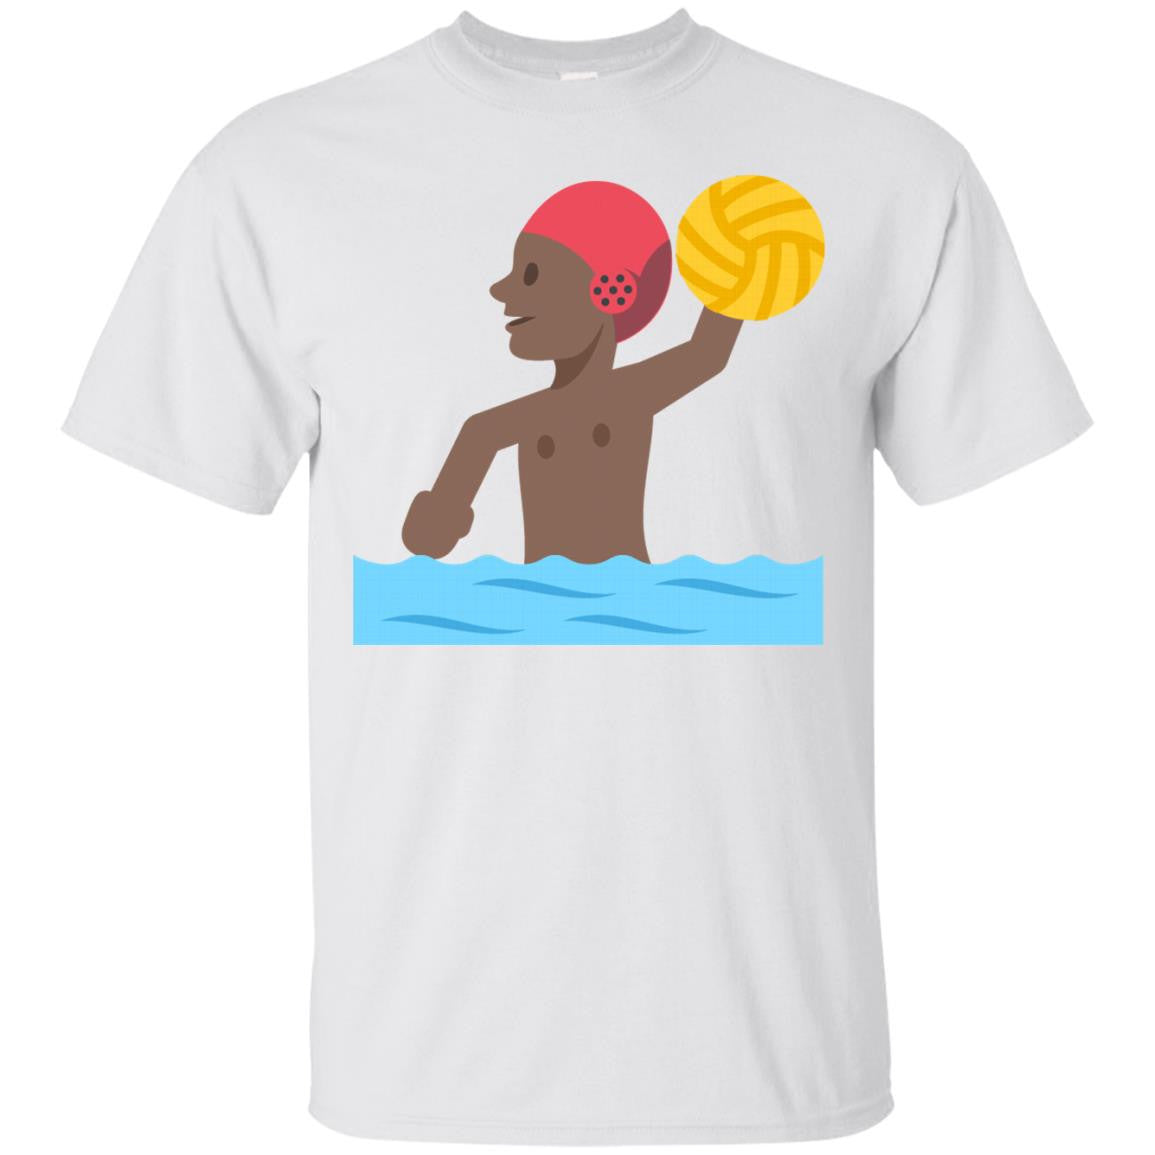 Water Polo Emoji T-Shirt